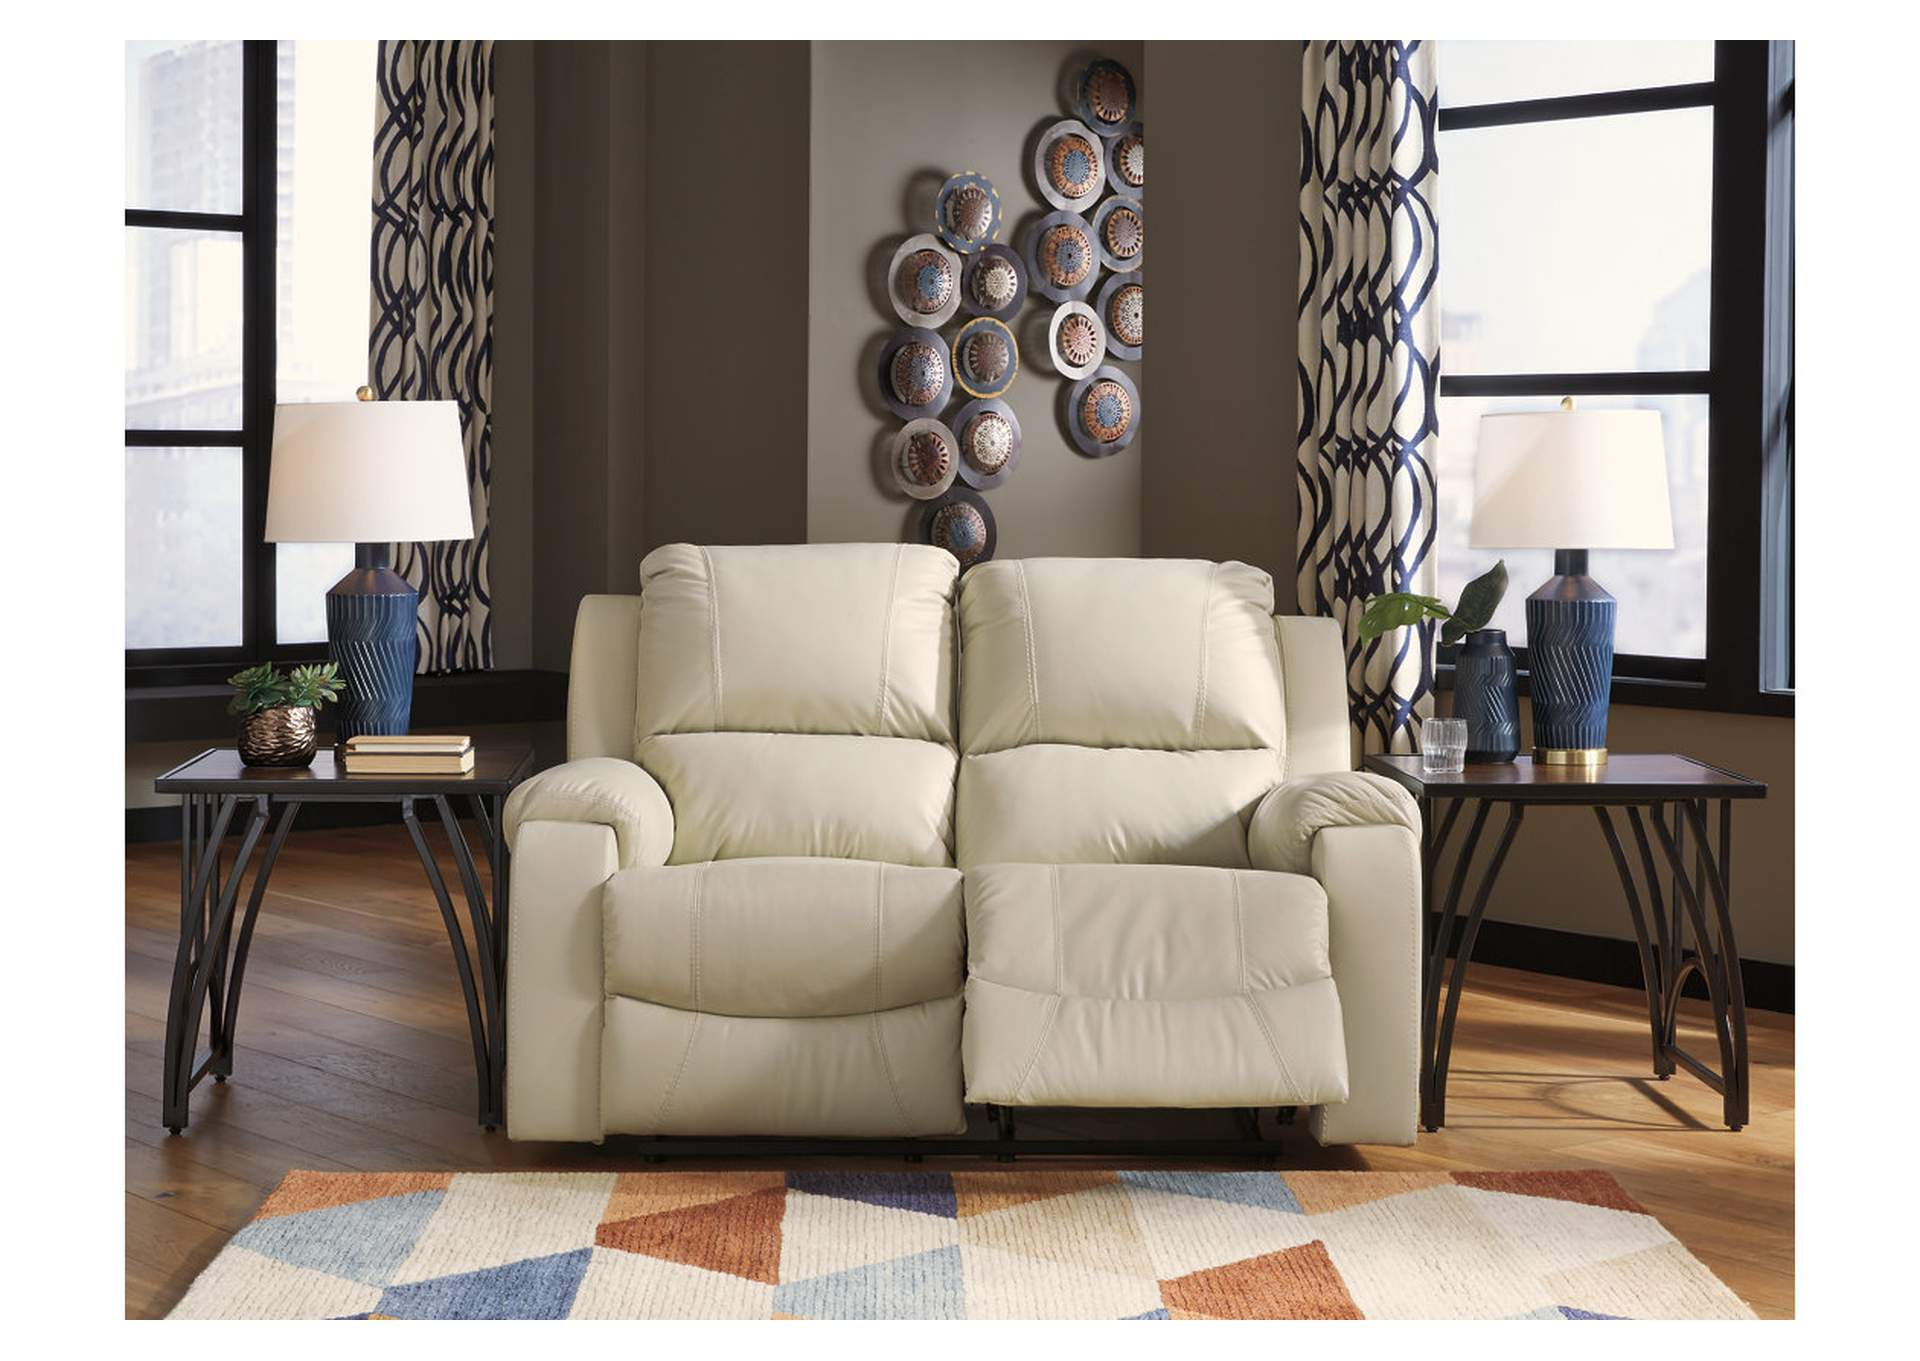 Rackingburg Cream Reclining Loveseat,Signature Design By Ashley